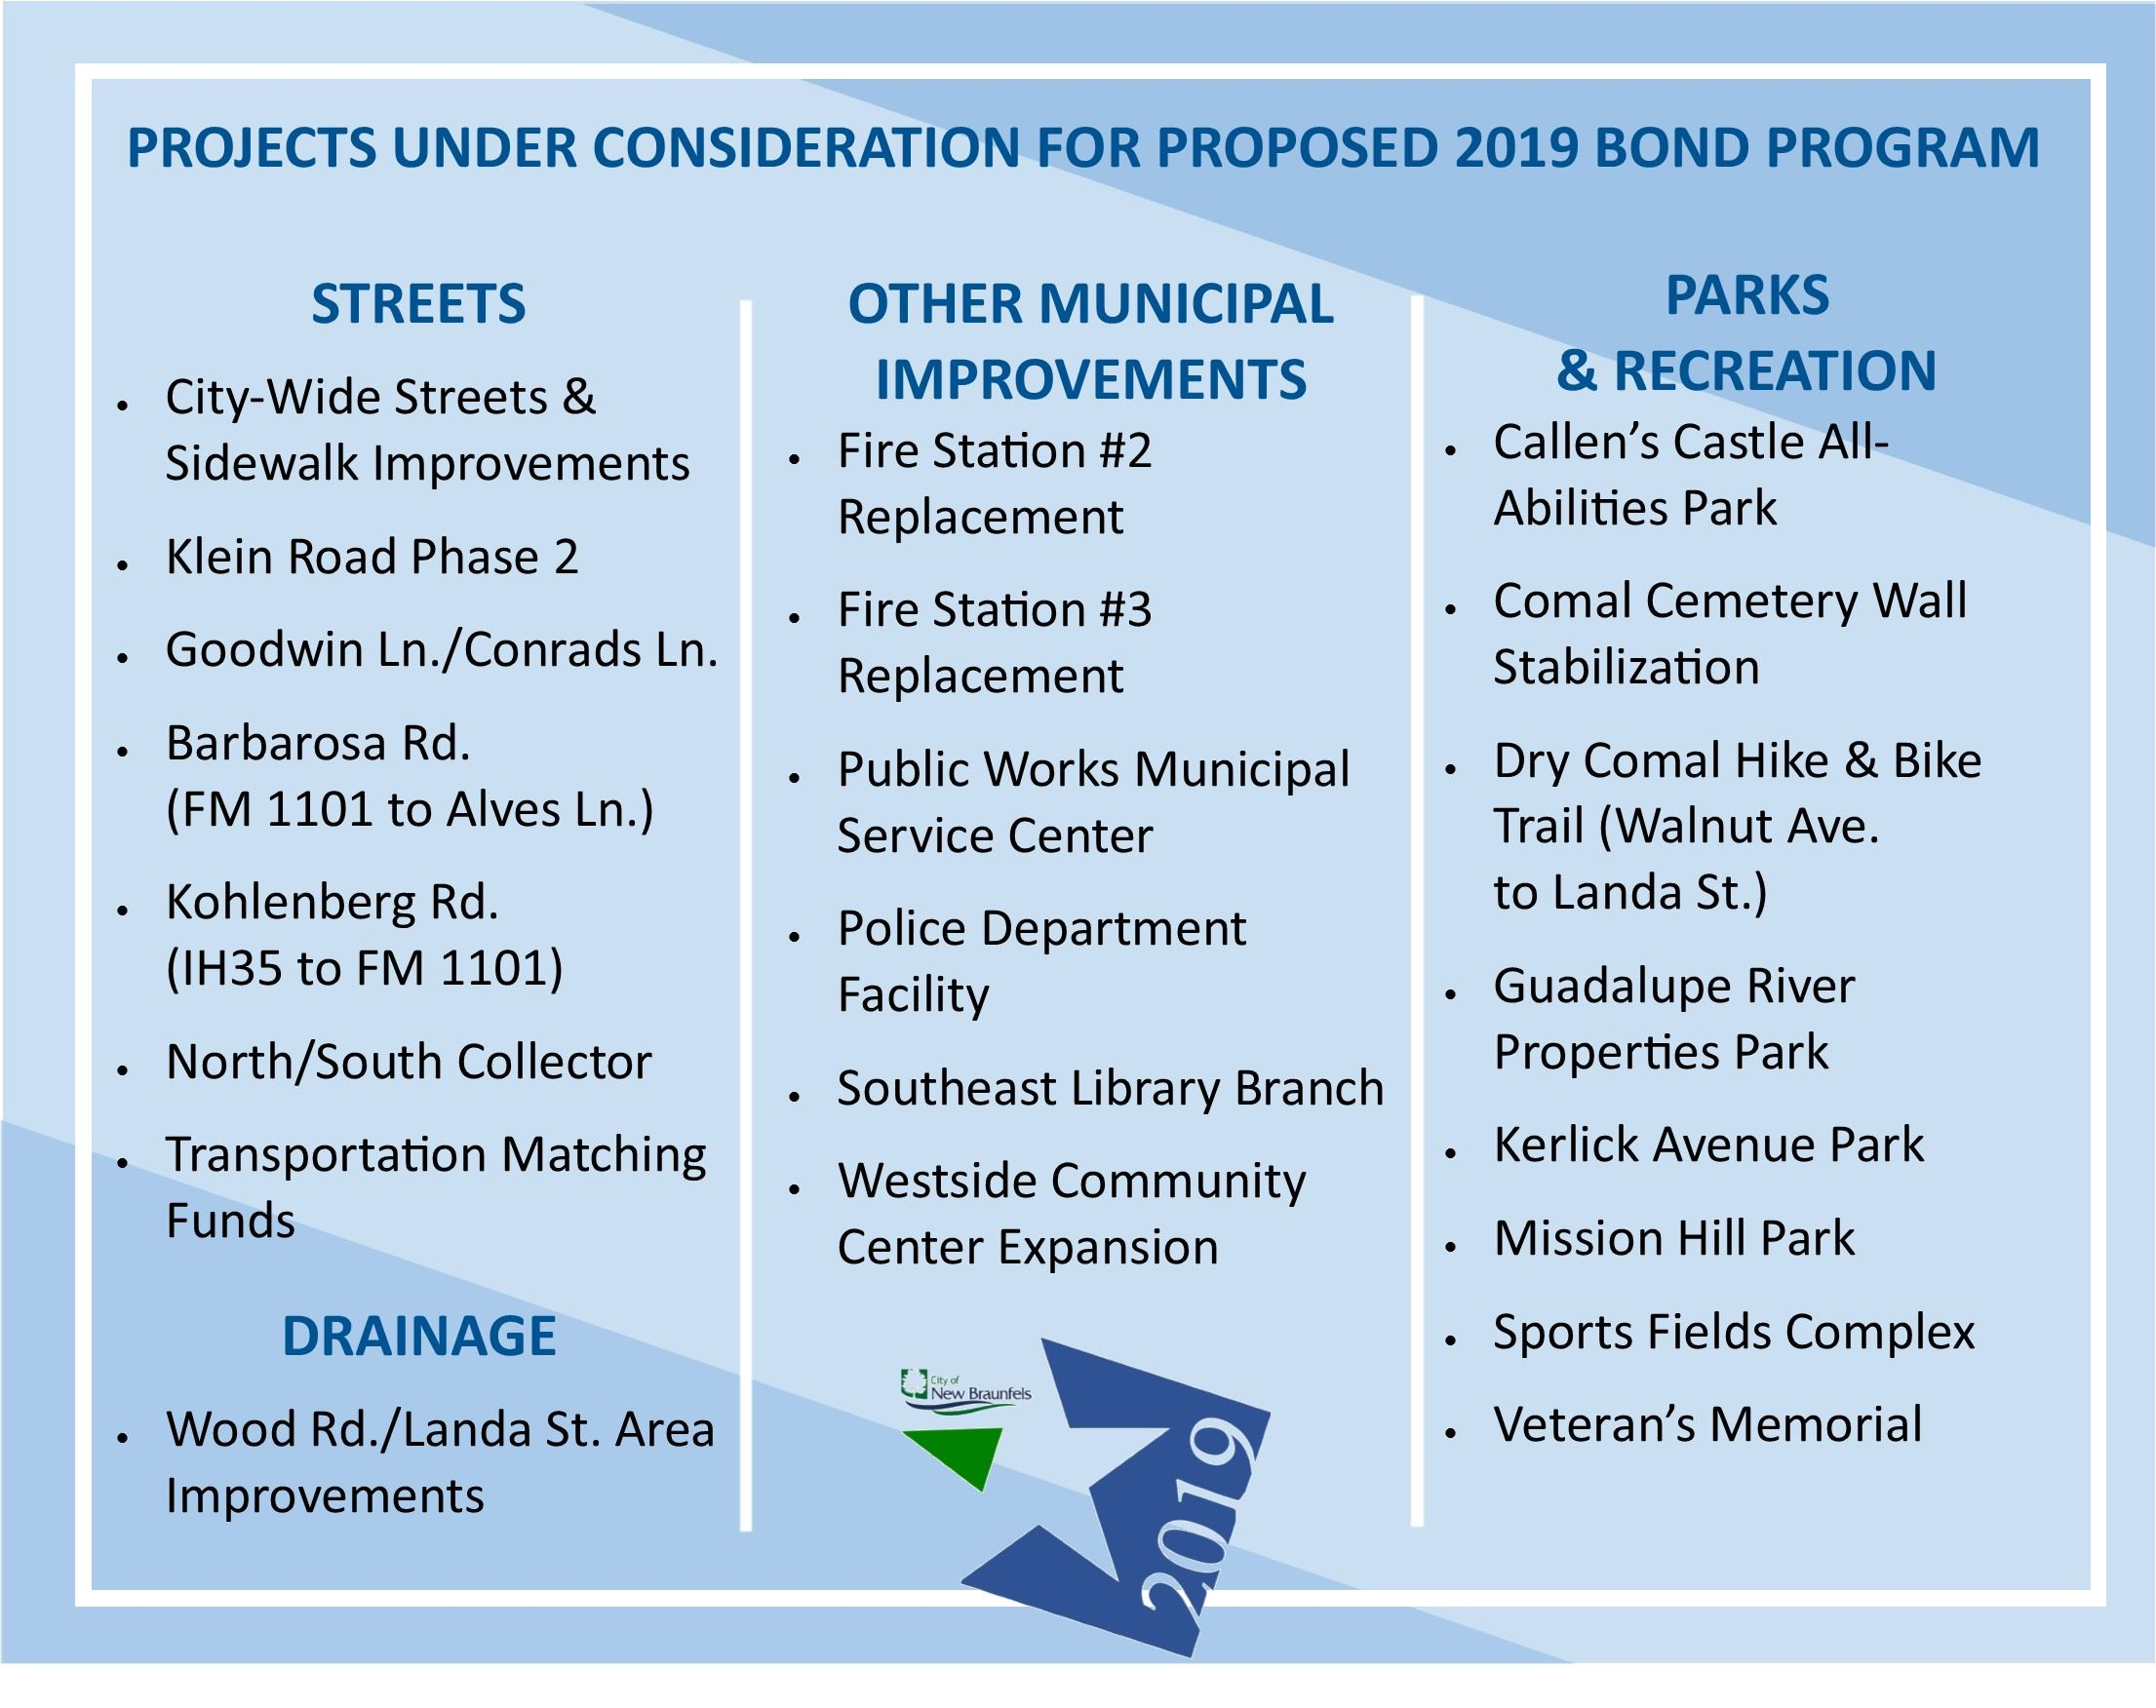 Projects Under Consideration for Proposed 2019 Bond Program